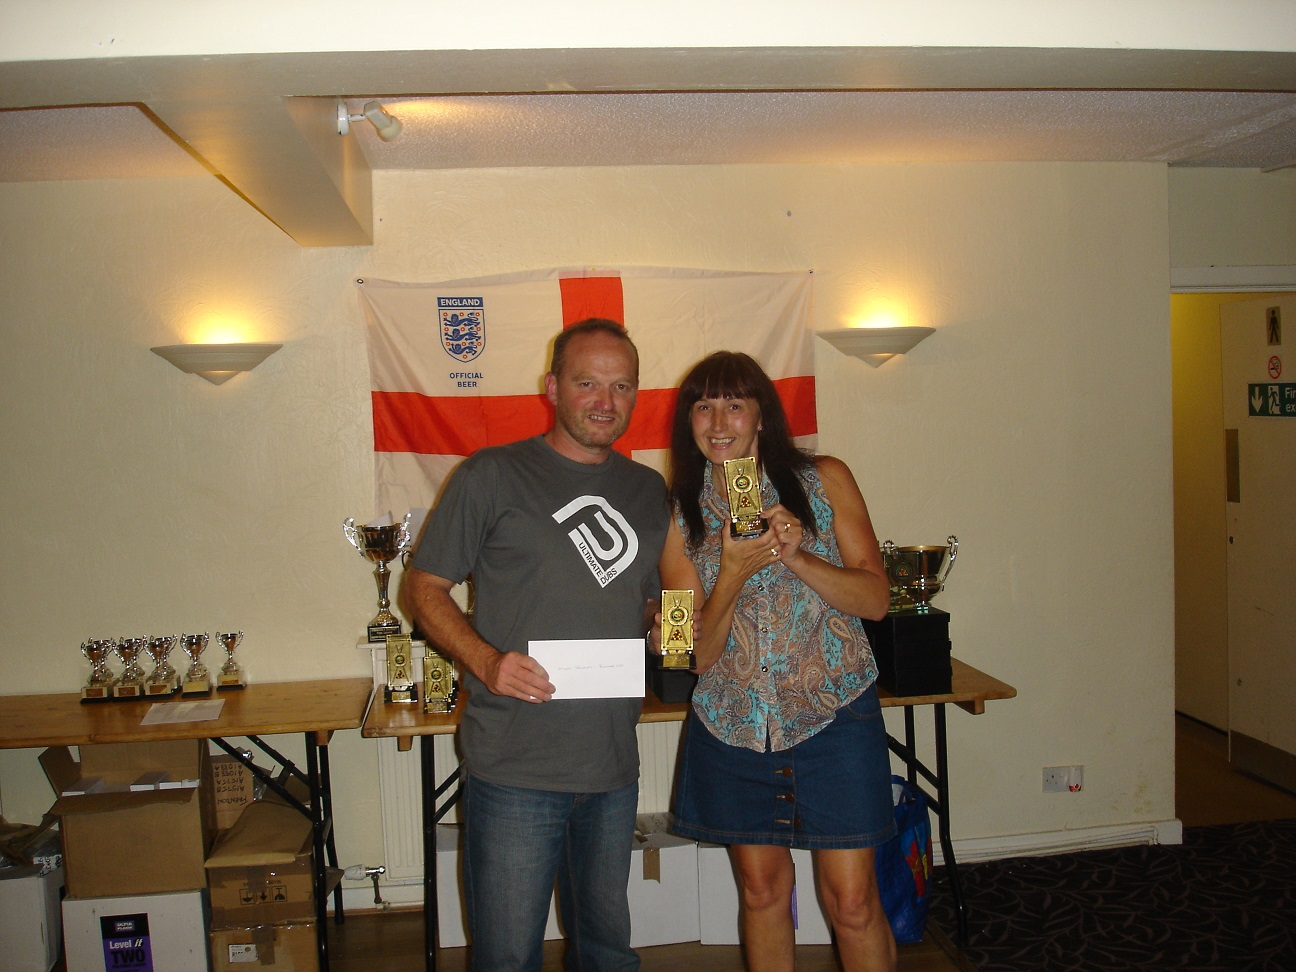 Mixed Doubles Runners up - Aaron Crofts and Carol Crofts